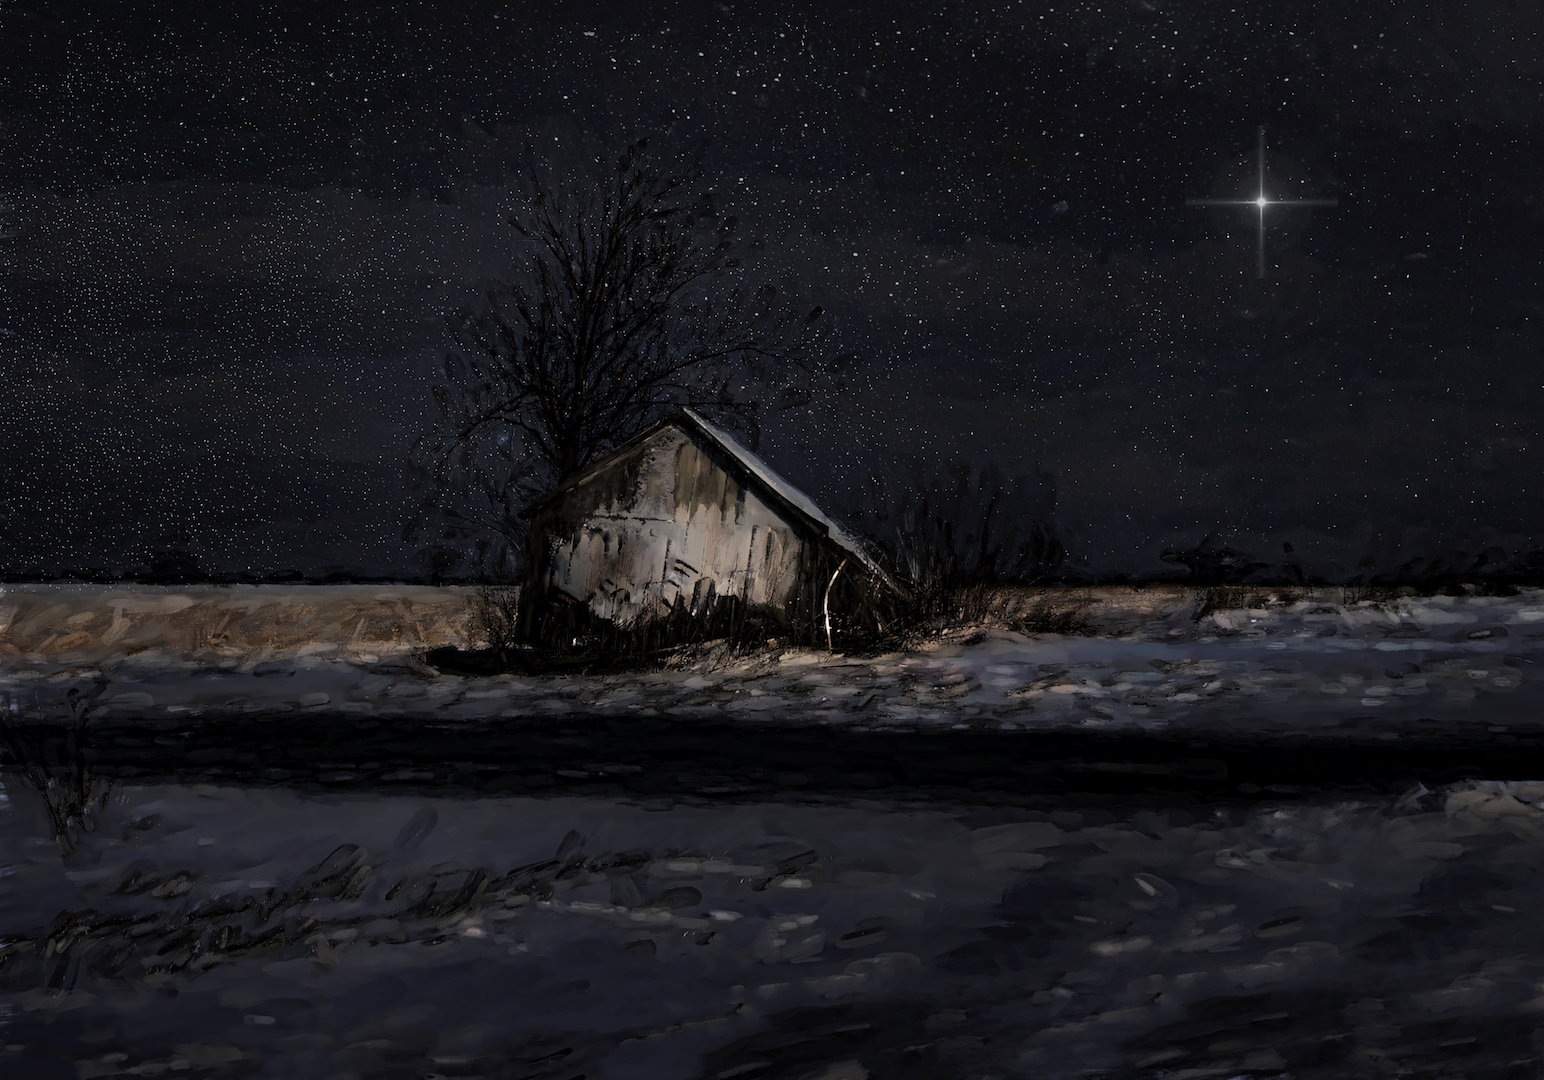 What was the Star of Bethlehem?